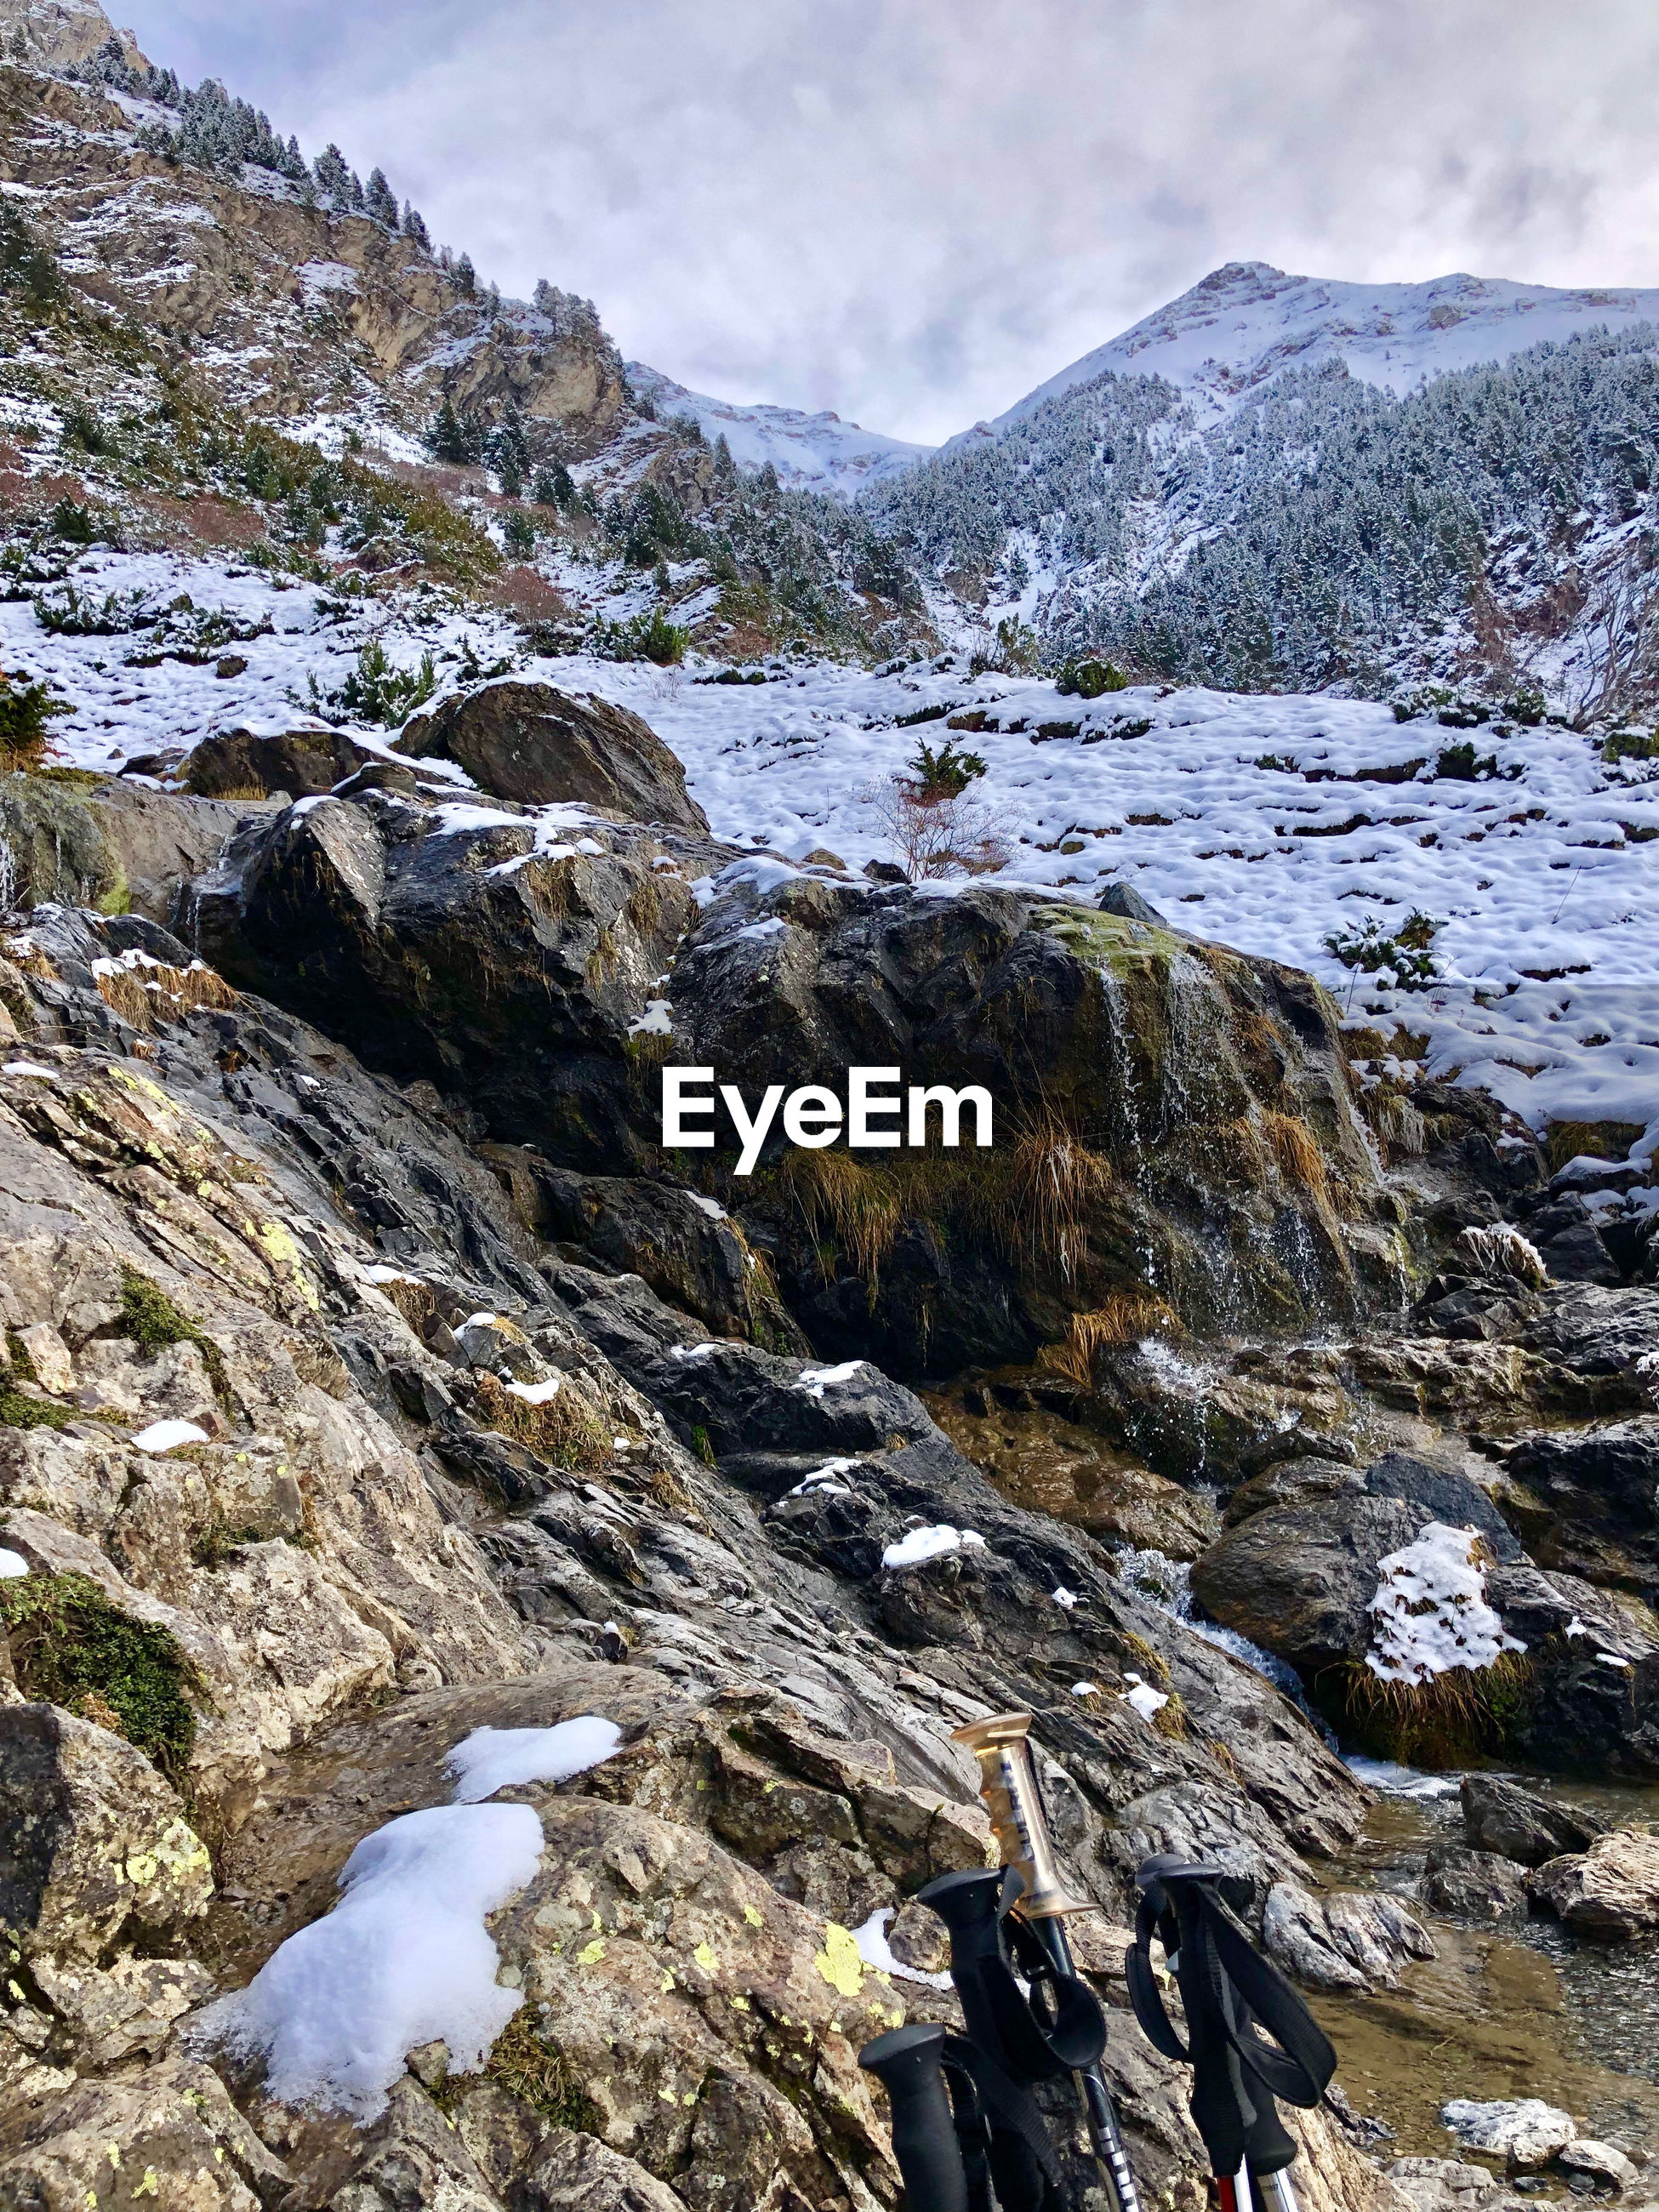 Scenic view of stream flowing through rocks during winter